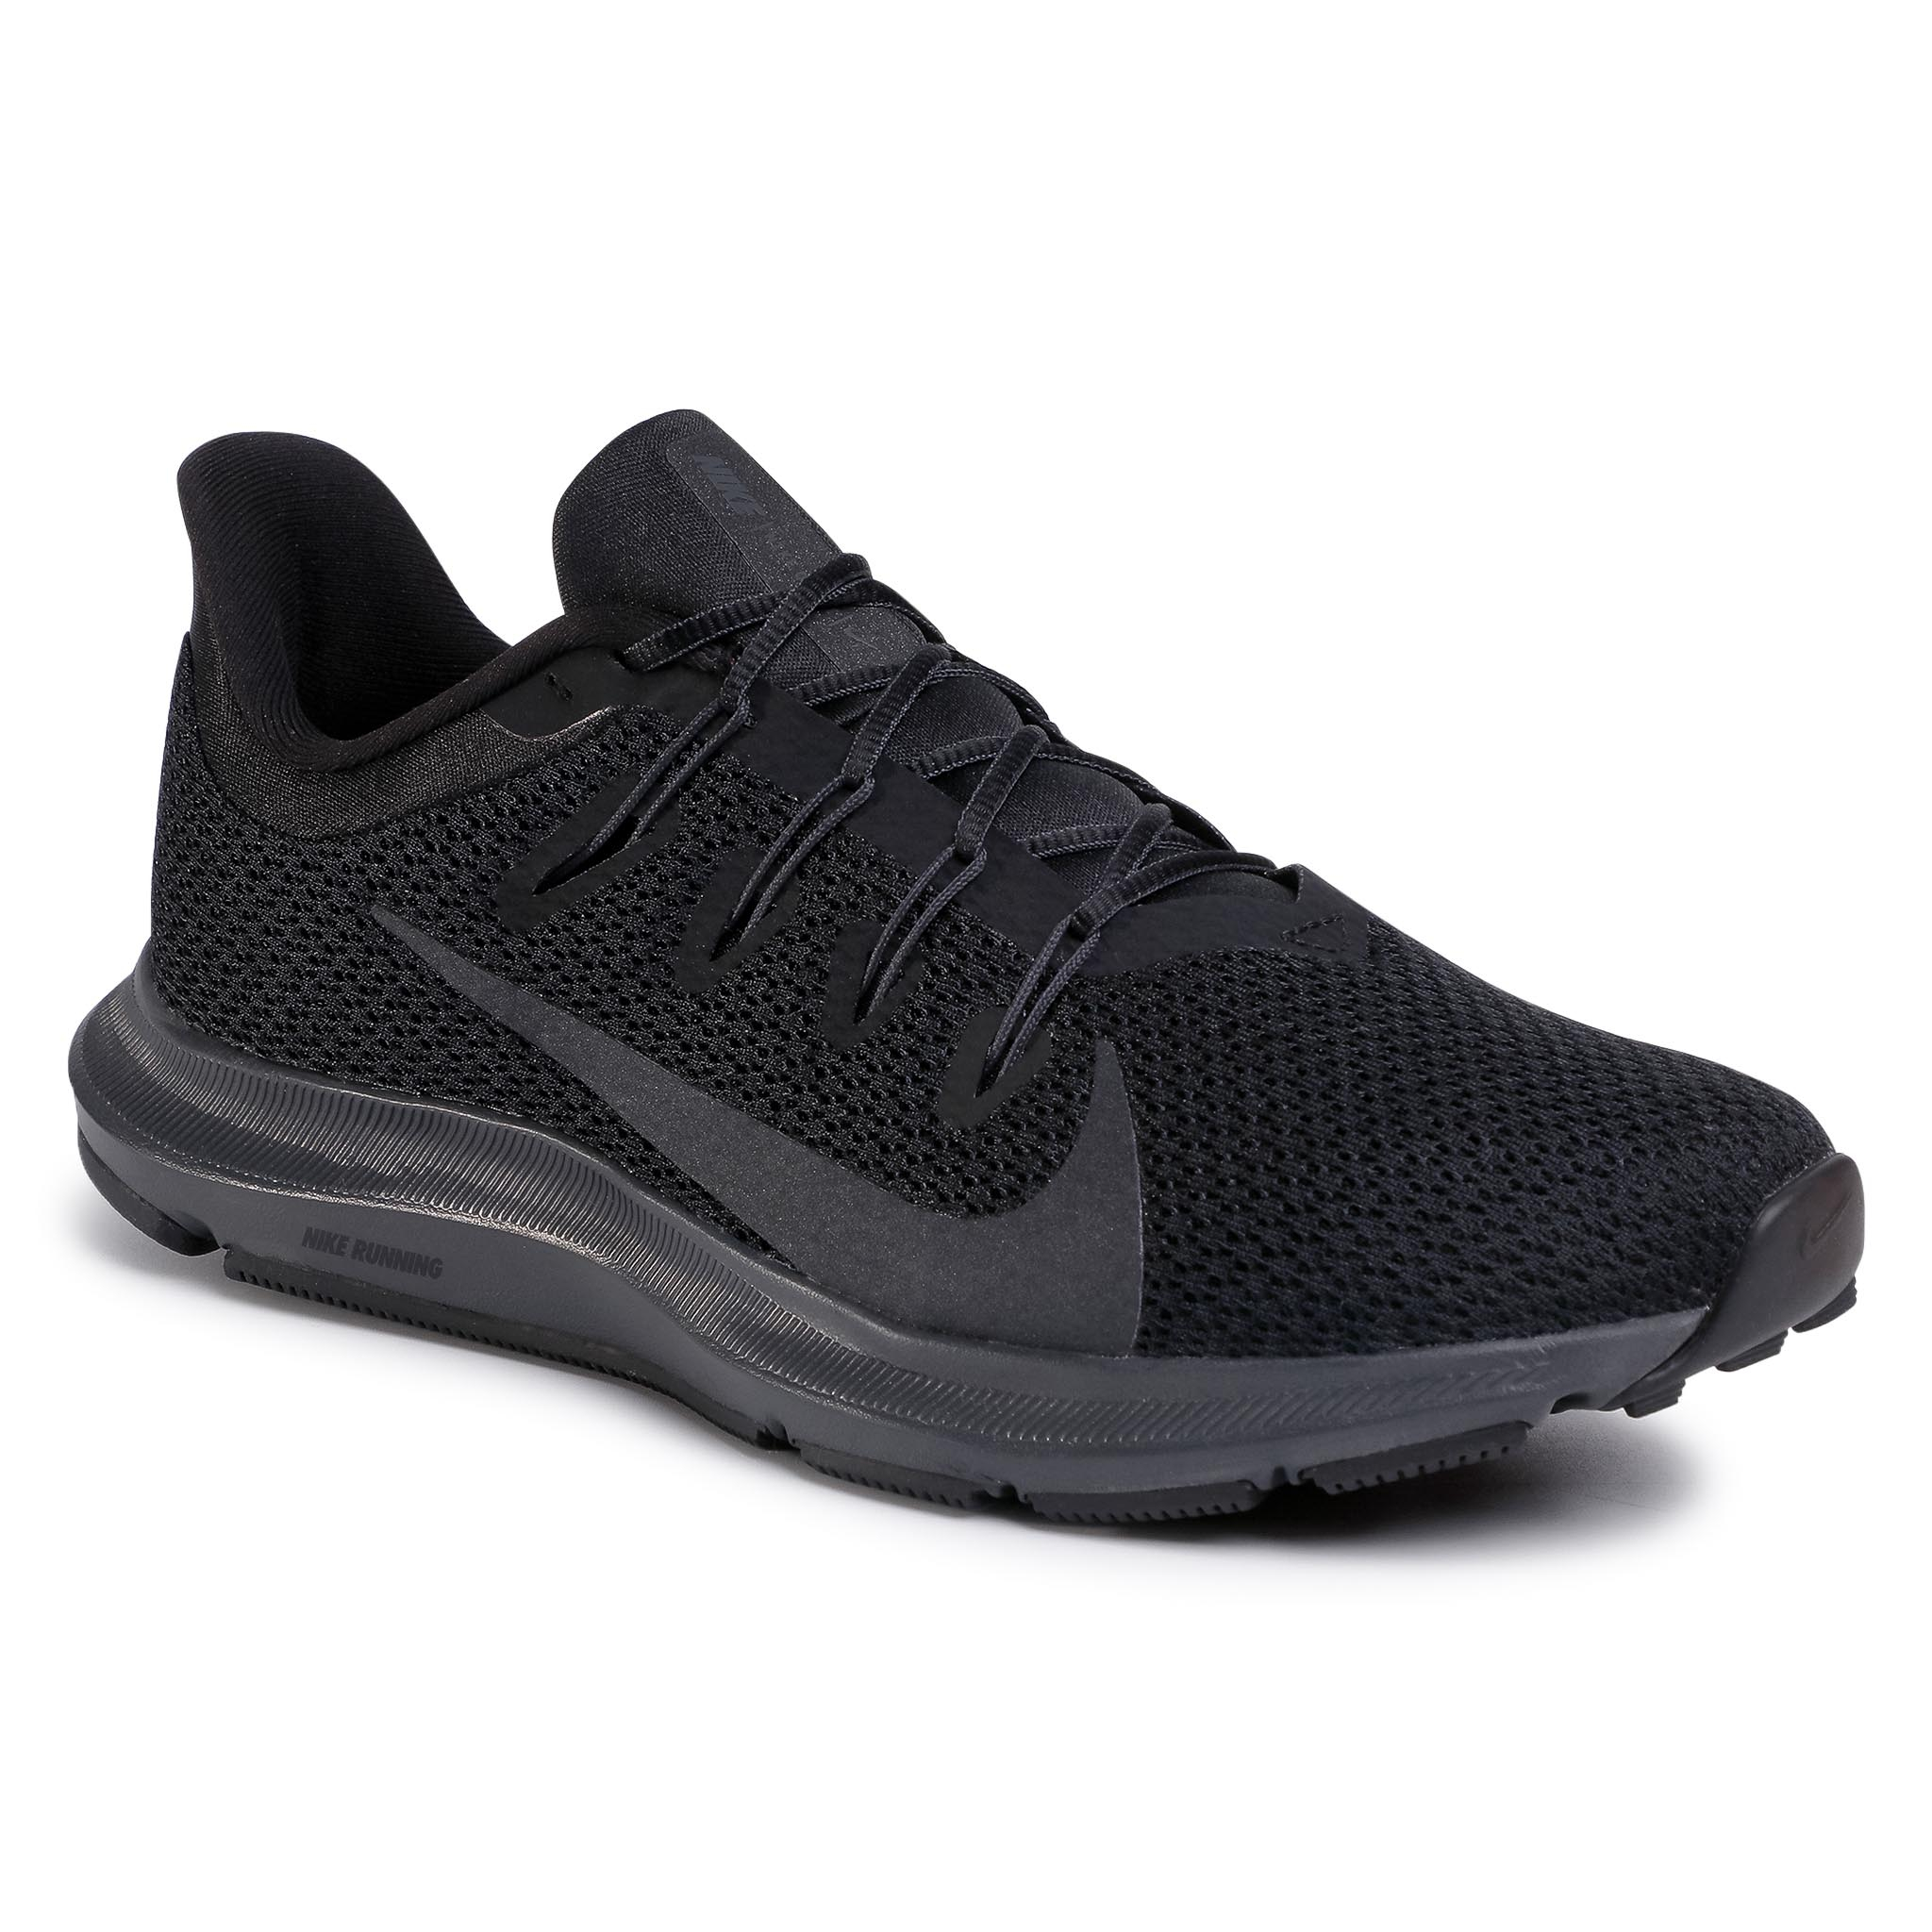 Topánky NIKE - Quest 2 CI3787-003 Black/Anthracite